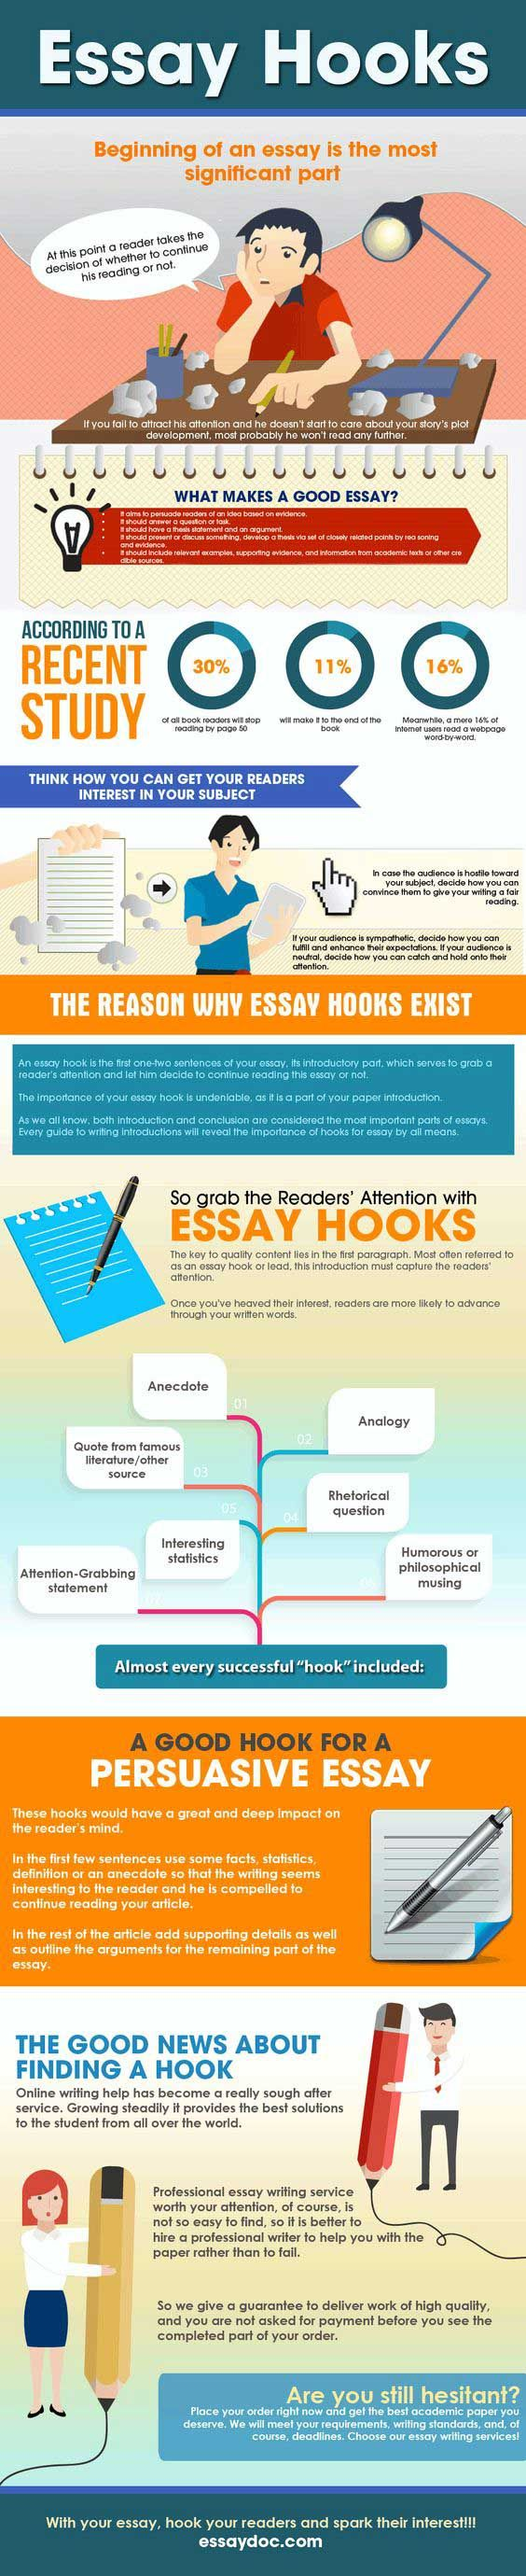 High School Research Paper Writing Course   Time Writing IJOEAR